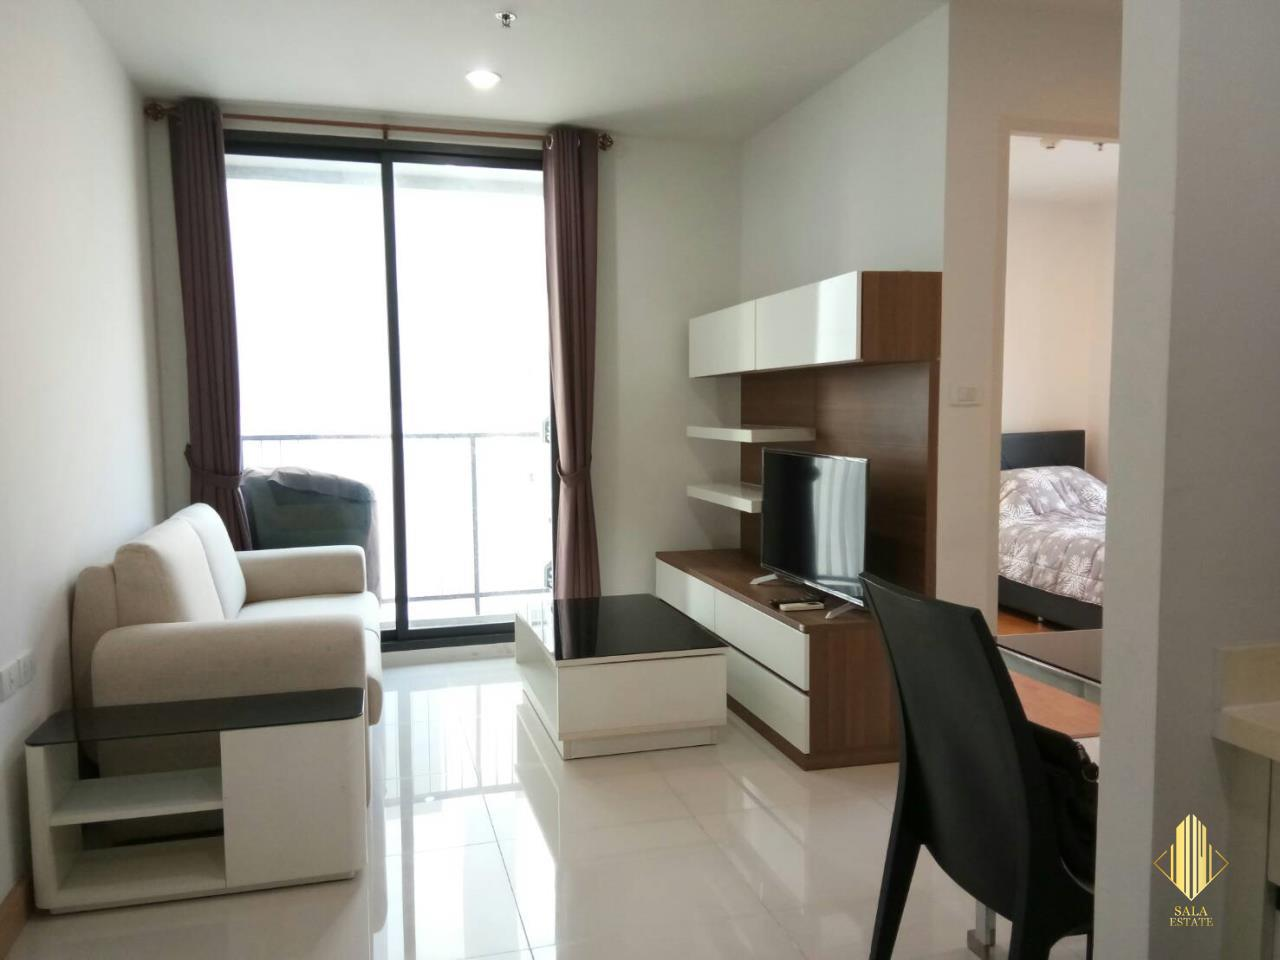 SALA ESTATE Agency's THE PRESIDENT SUKHUMWIT-BTS ONNUT 2 BEDROOM 1 BATHROOM FULLY FURNISHED 2